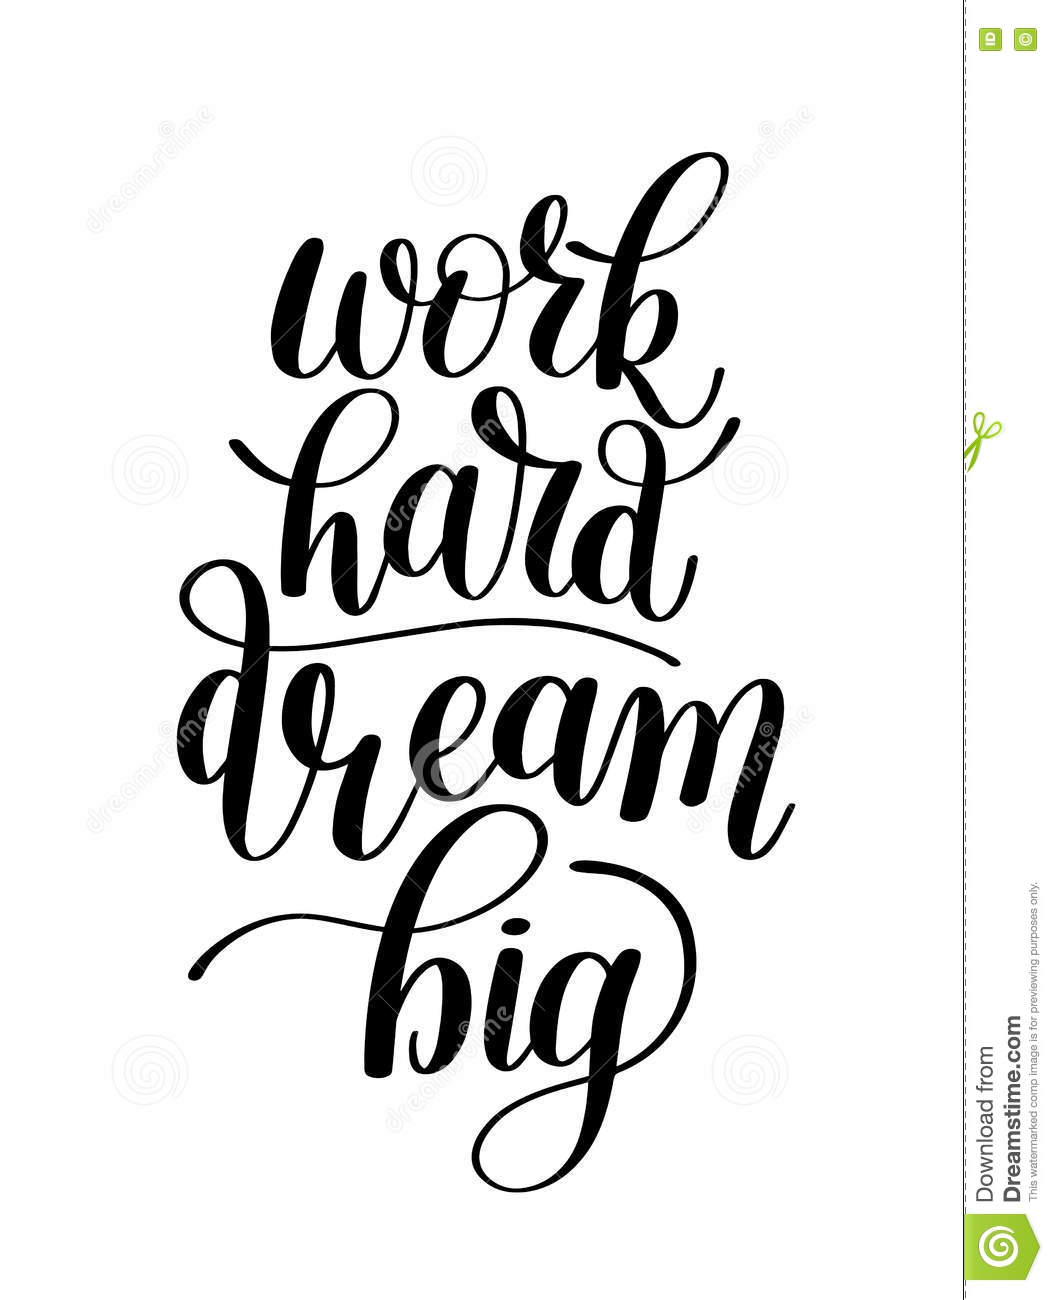 Quotes About Hard Work And Dreams: Work Hard Dream Big, Word Expression / Quote Illustration